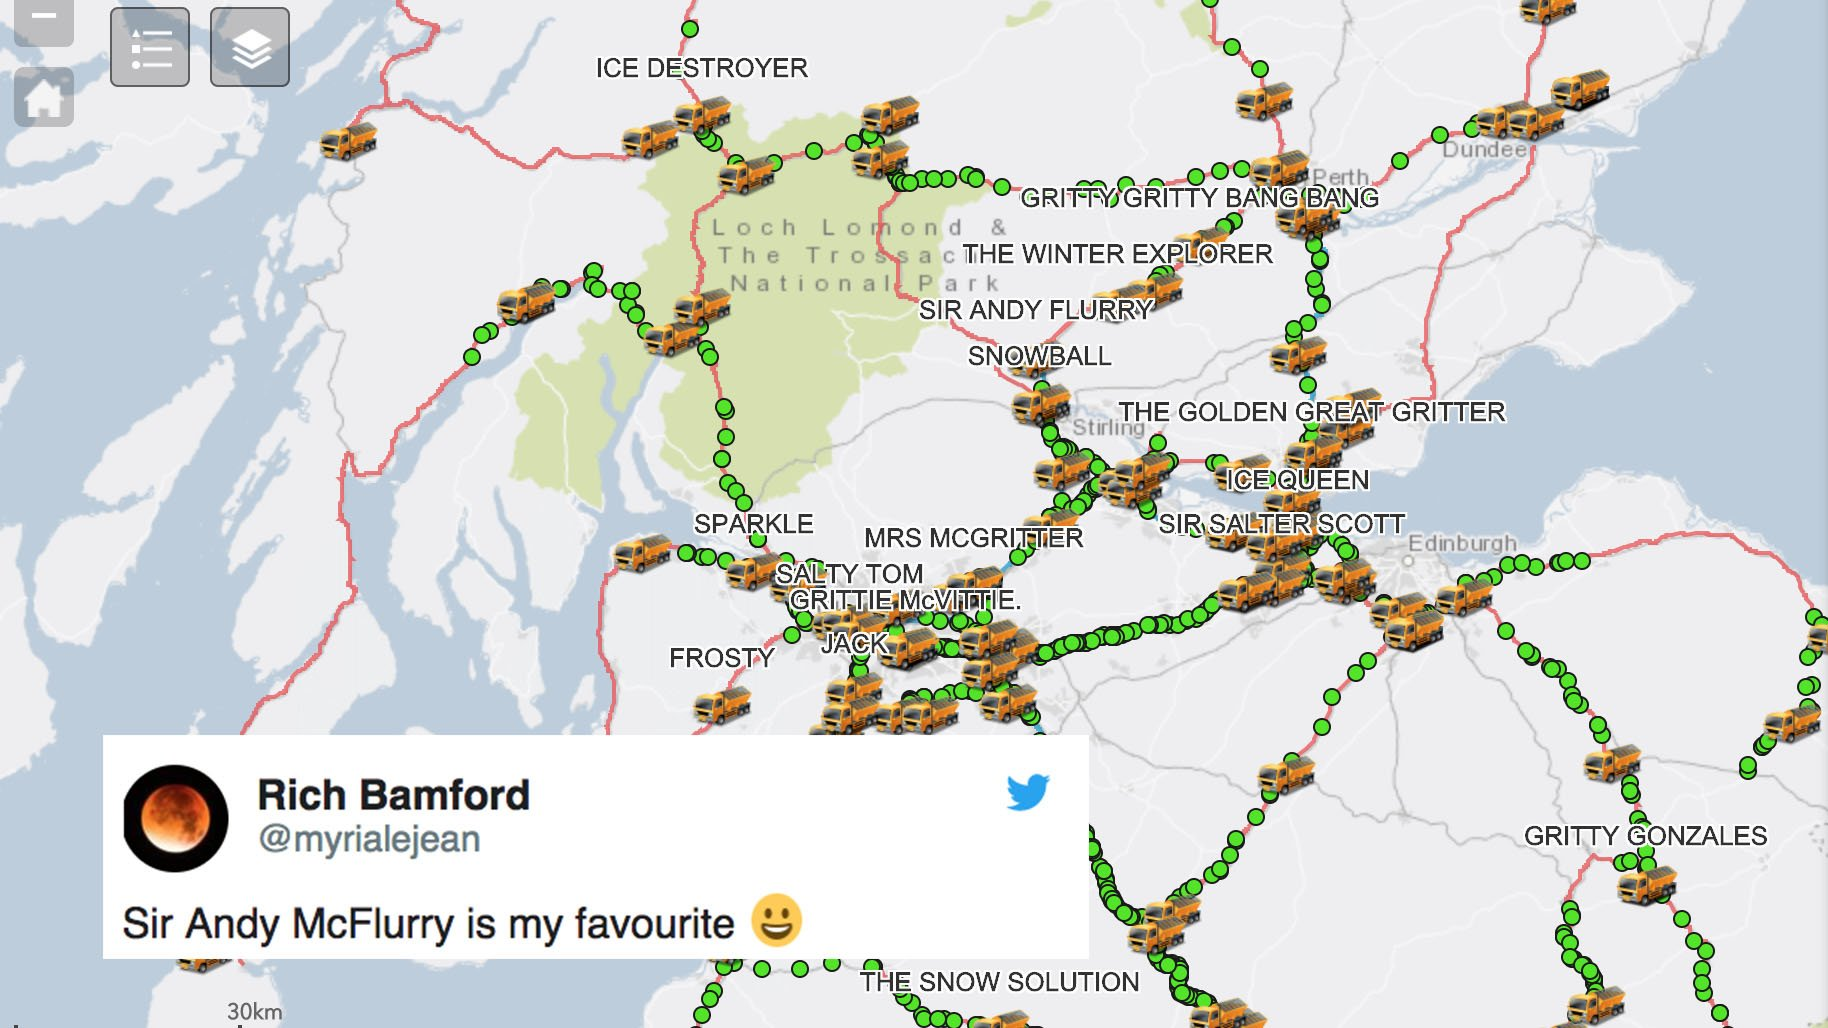 You can track gritters in Scotland and they have incredible names https://t.co/IRETPIqE6P https://t.co/GTehlLxhAu